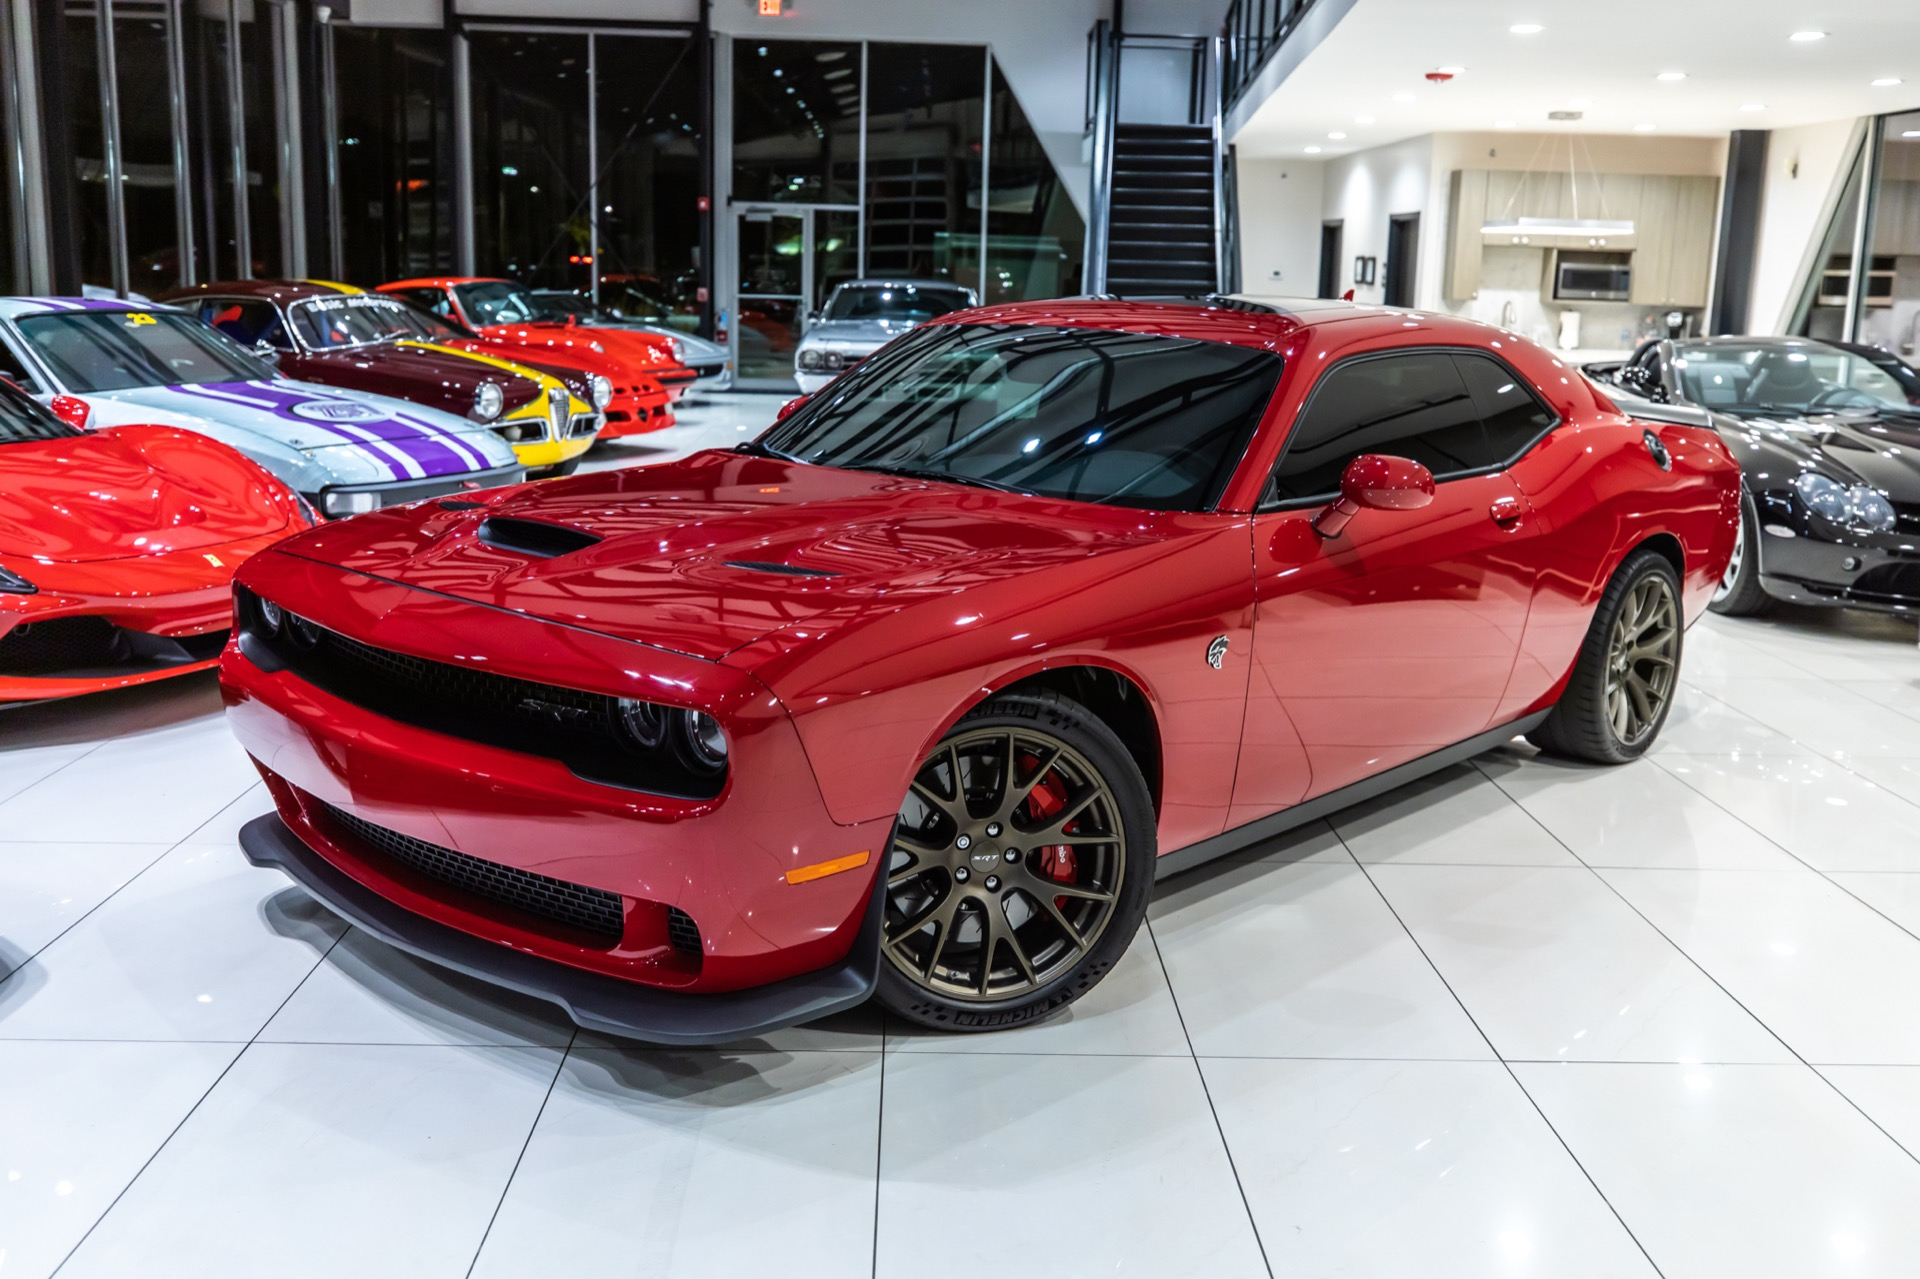 dodge hellcat for sale chicago Used 2016 Dodge Challenger SRT Hellcat 8-SPEED AUTOMATIC